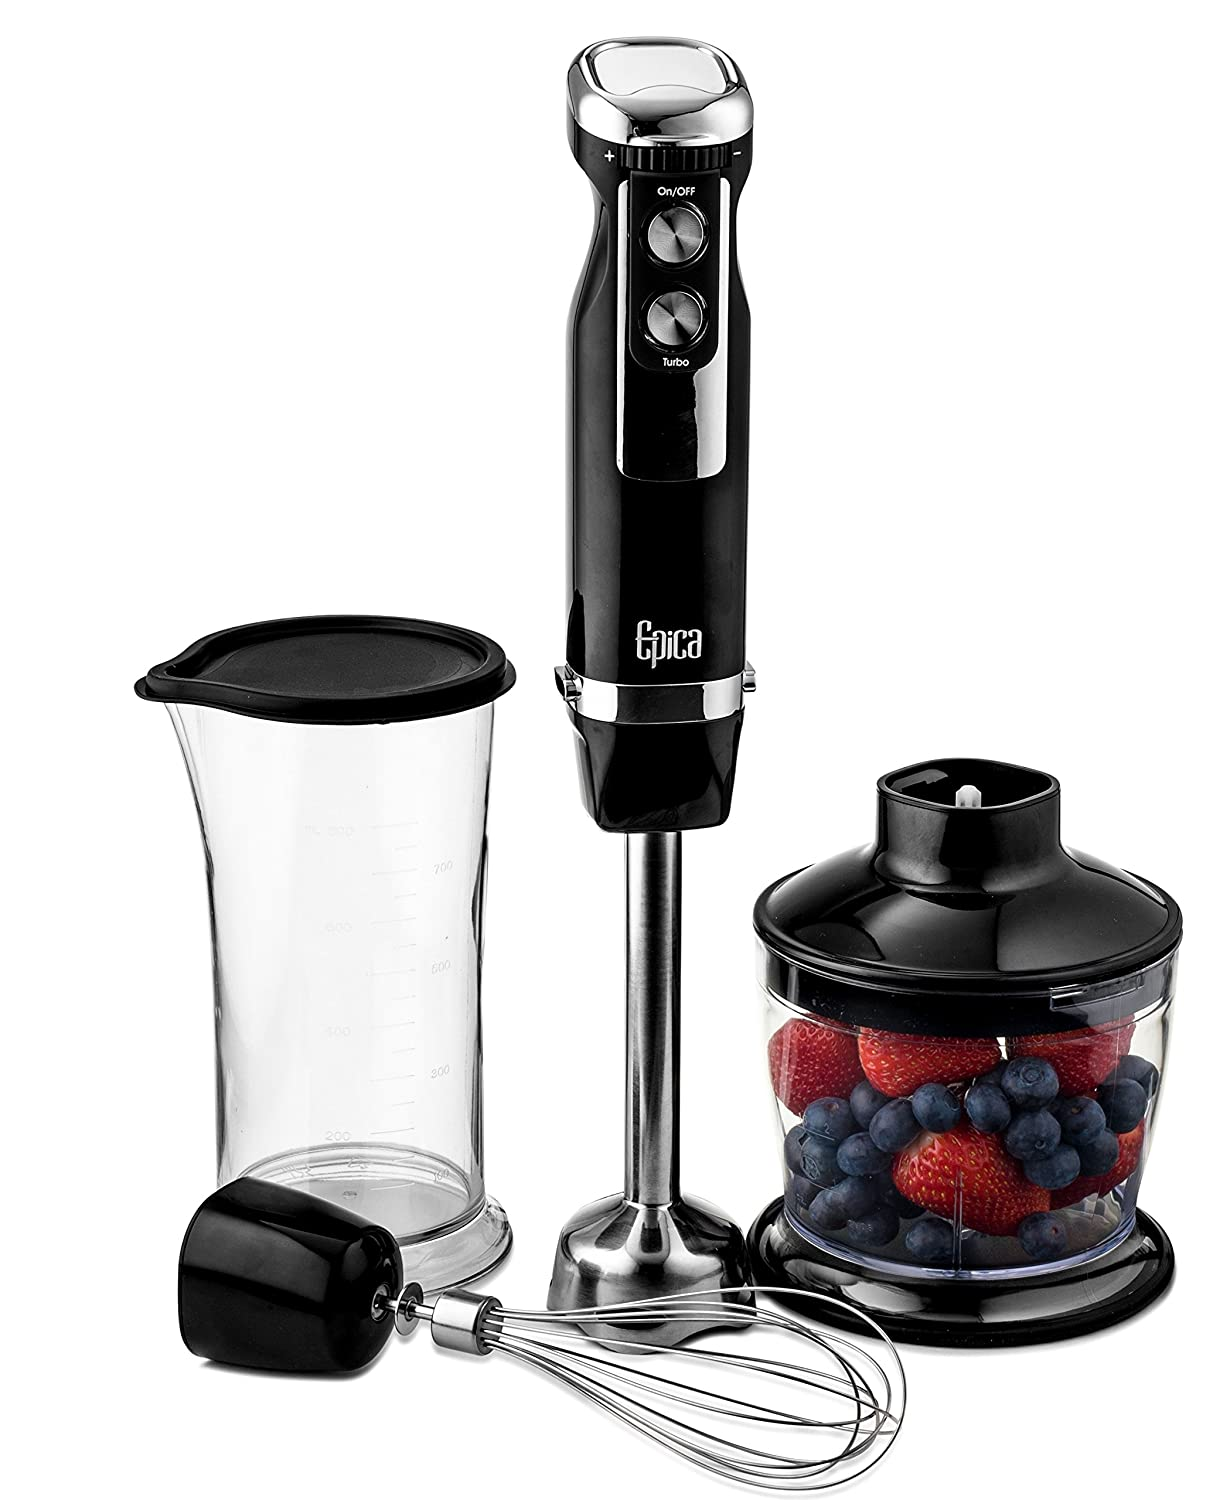 Epica 4-in-1 Immersion Hand Blender